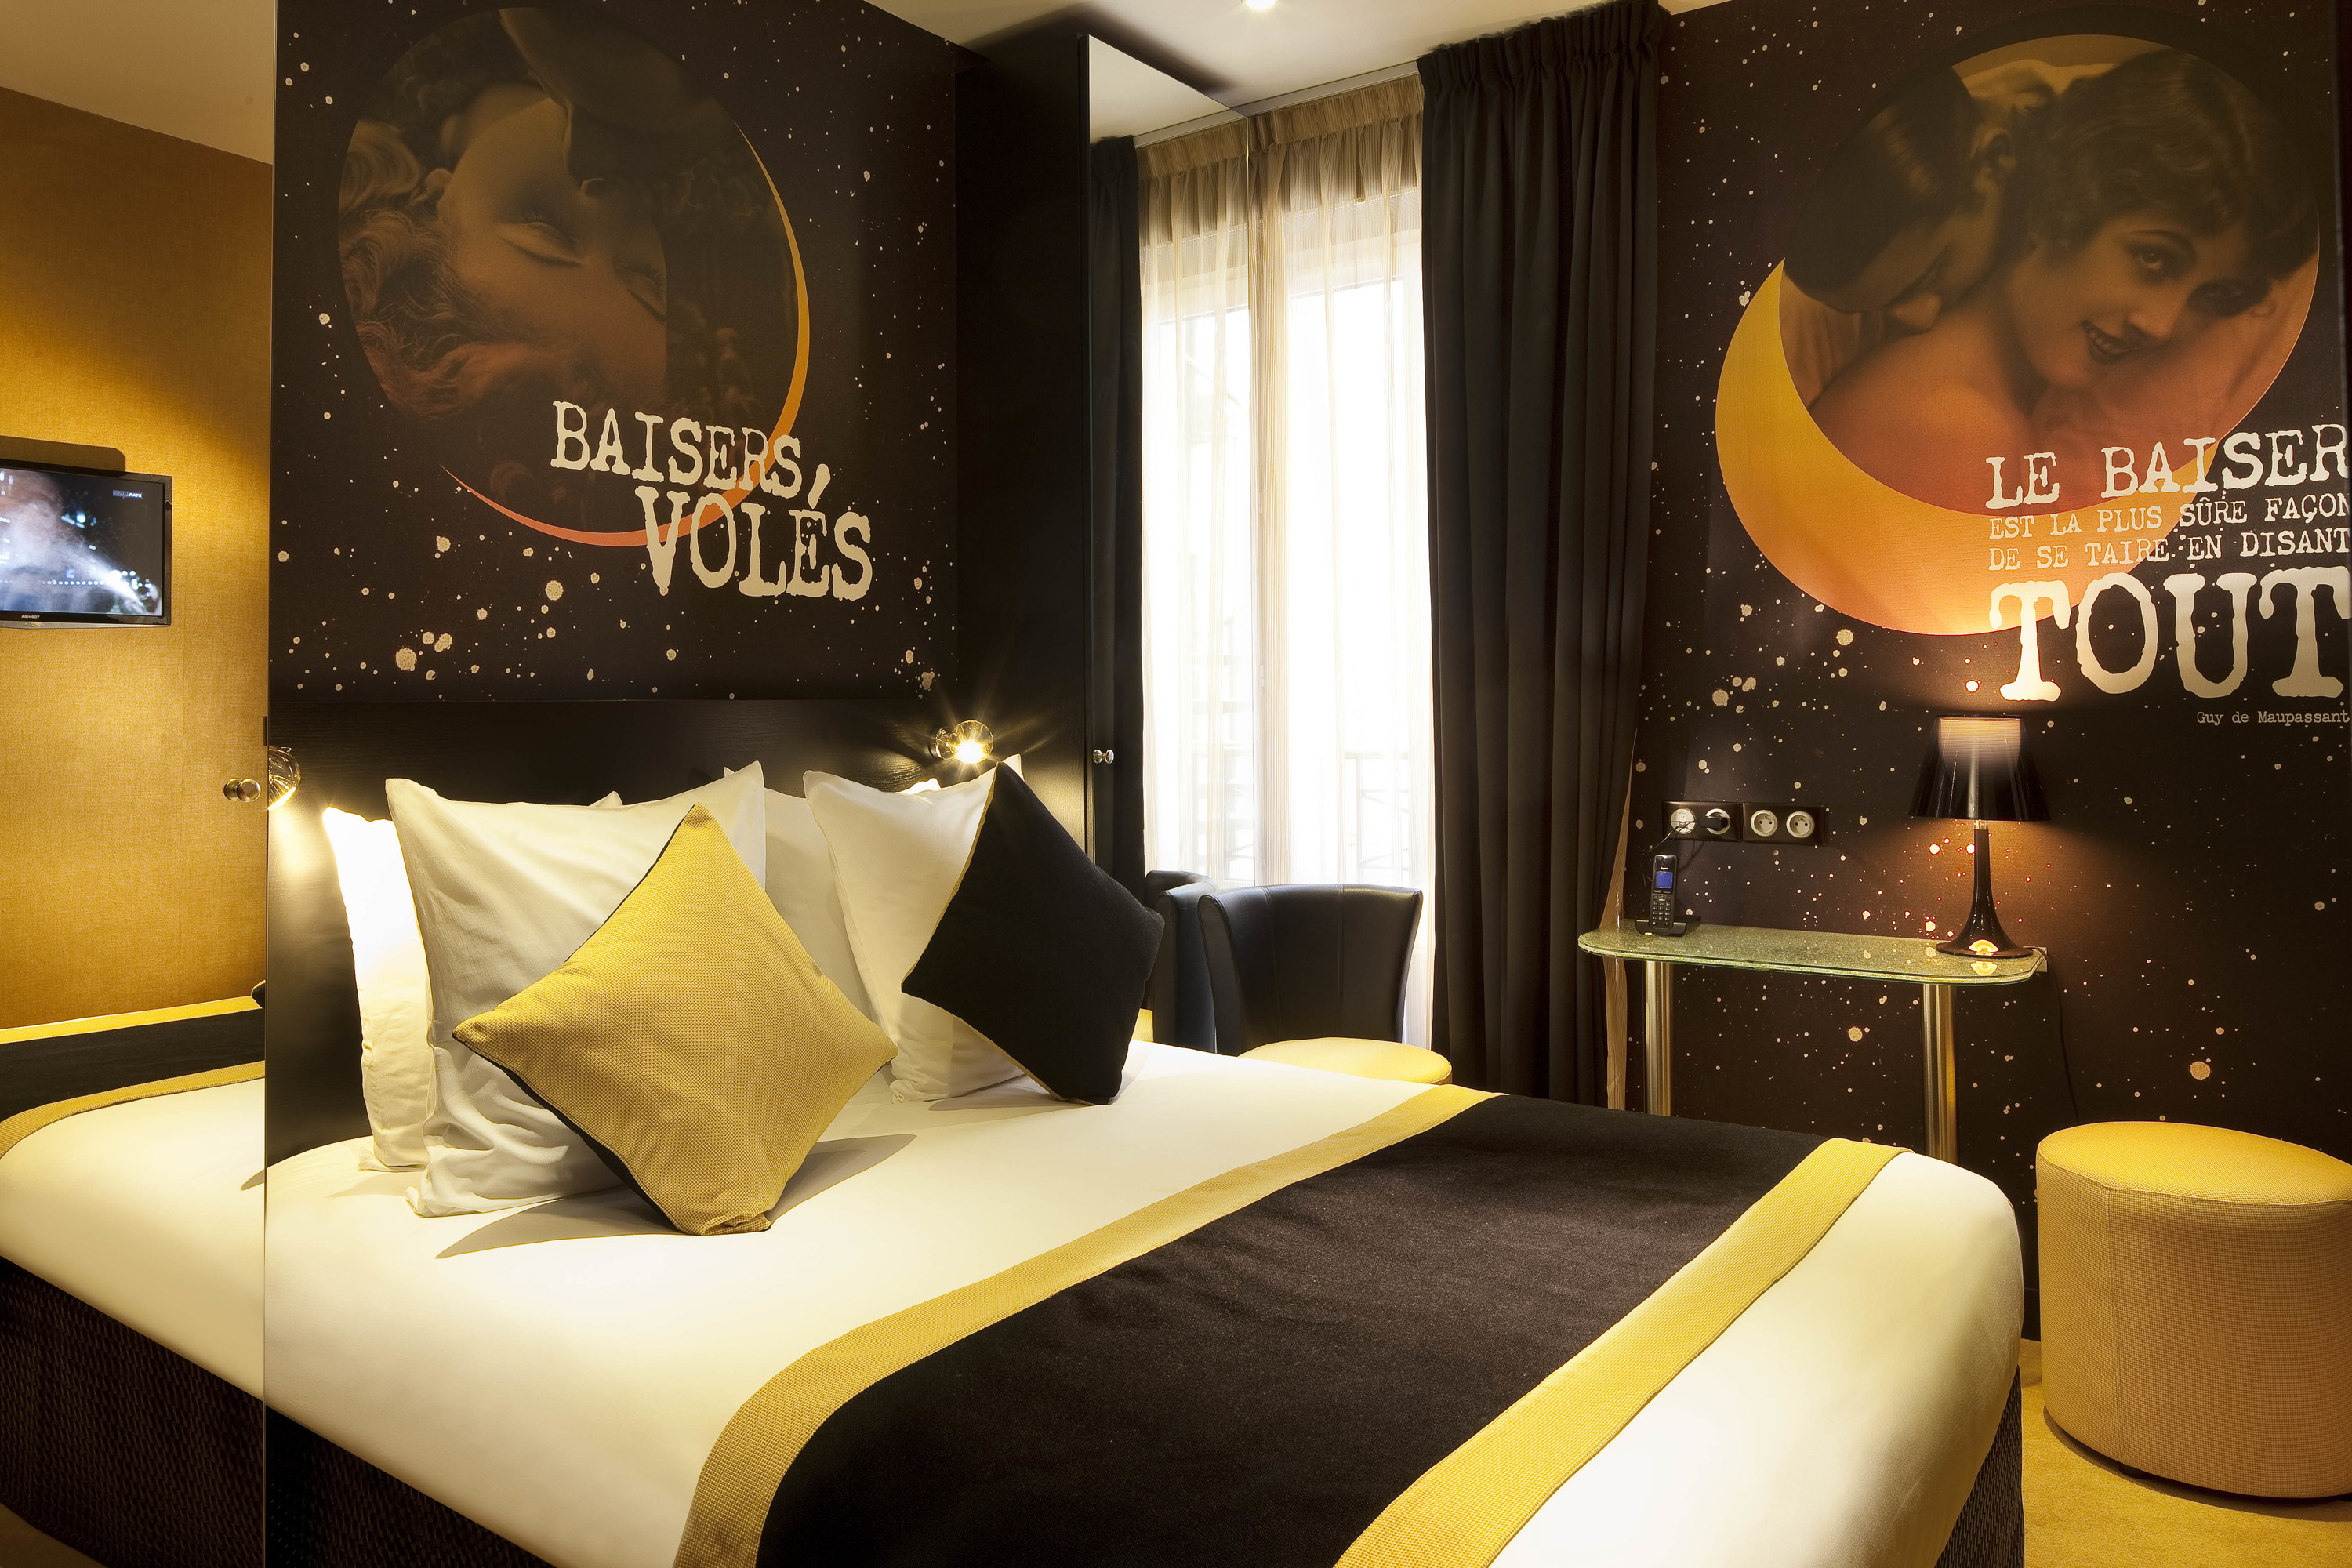 Extrêmement Romantic hotels | Hotels and accommodation | Time Out Paris CB94